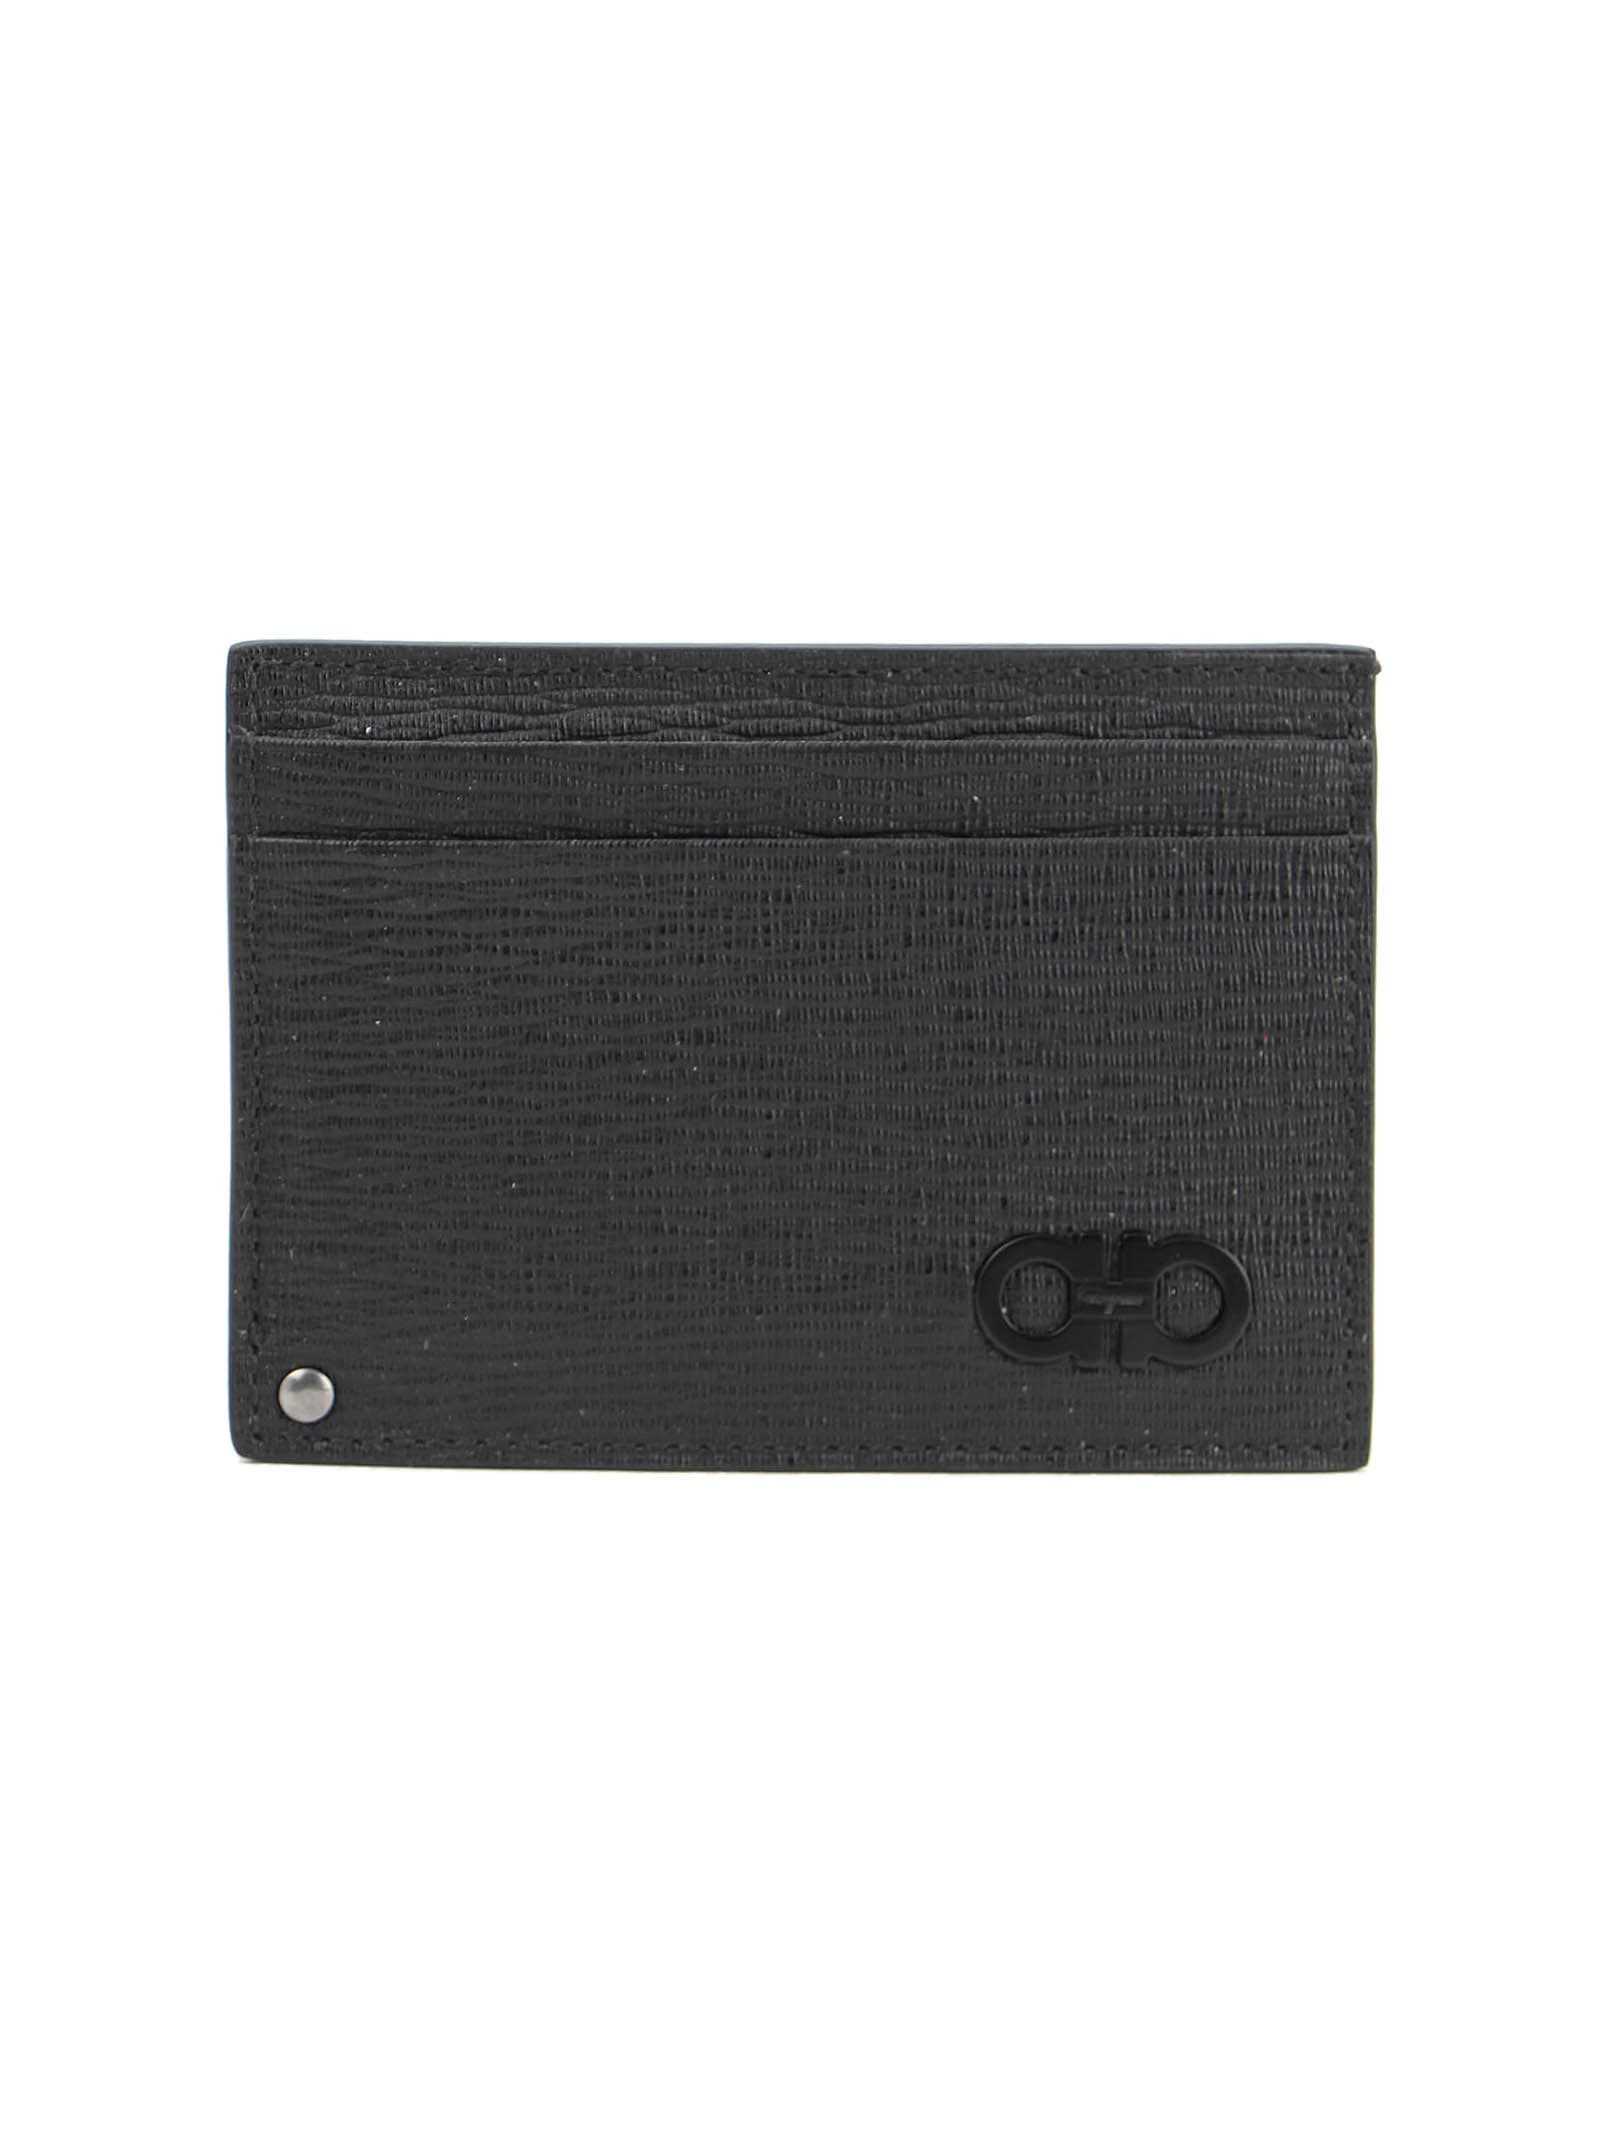 Salvatore Ferragamo Revival Wallet